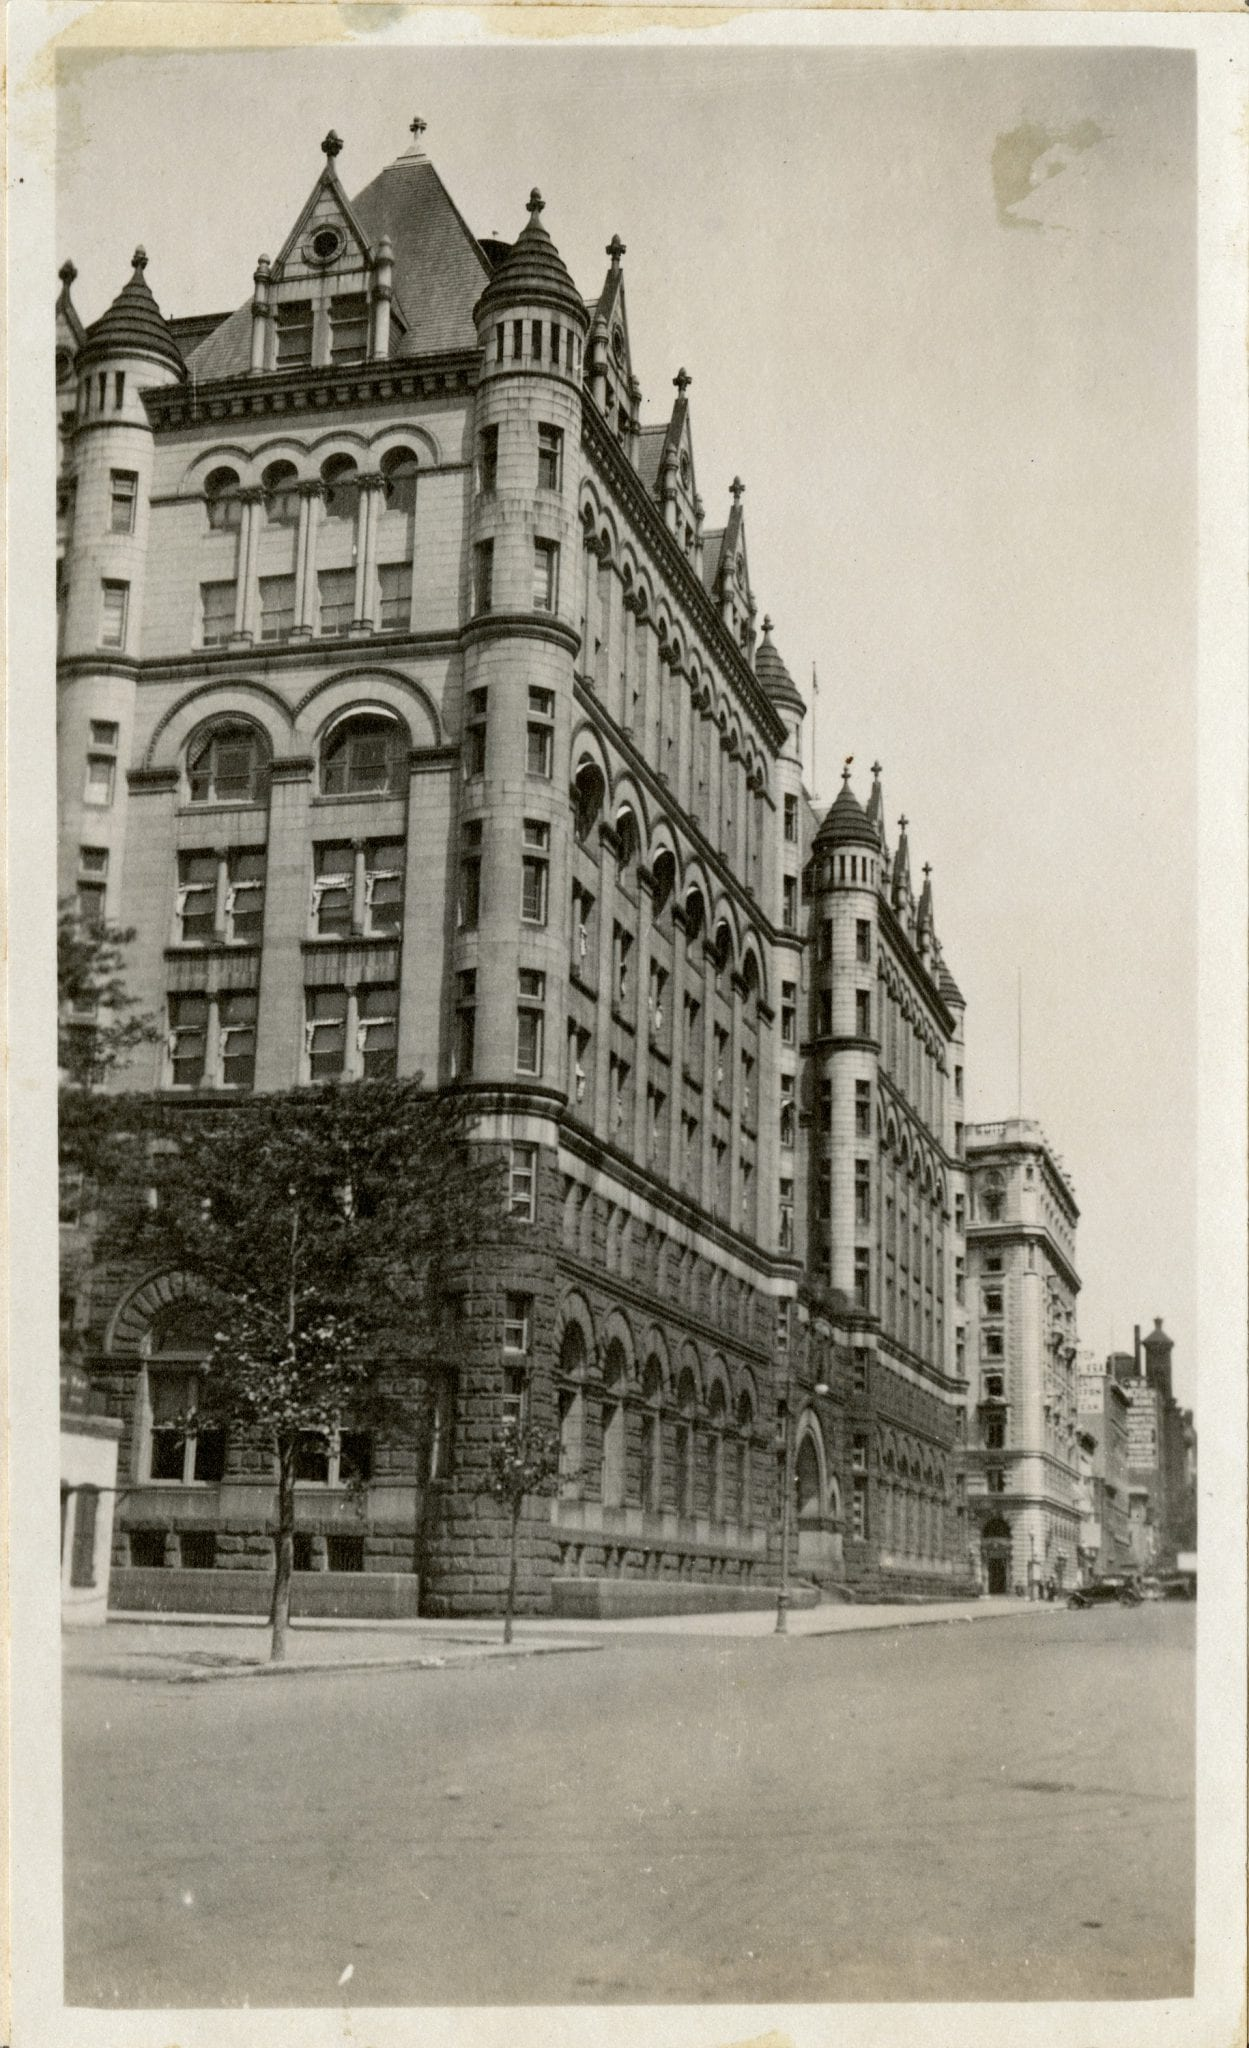 RU007355 - Martin A. Gruber Photograph Collection, 1919-1924, Smithsonian Institution Archives